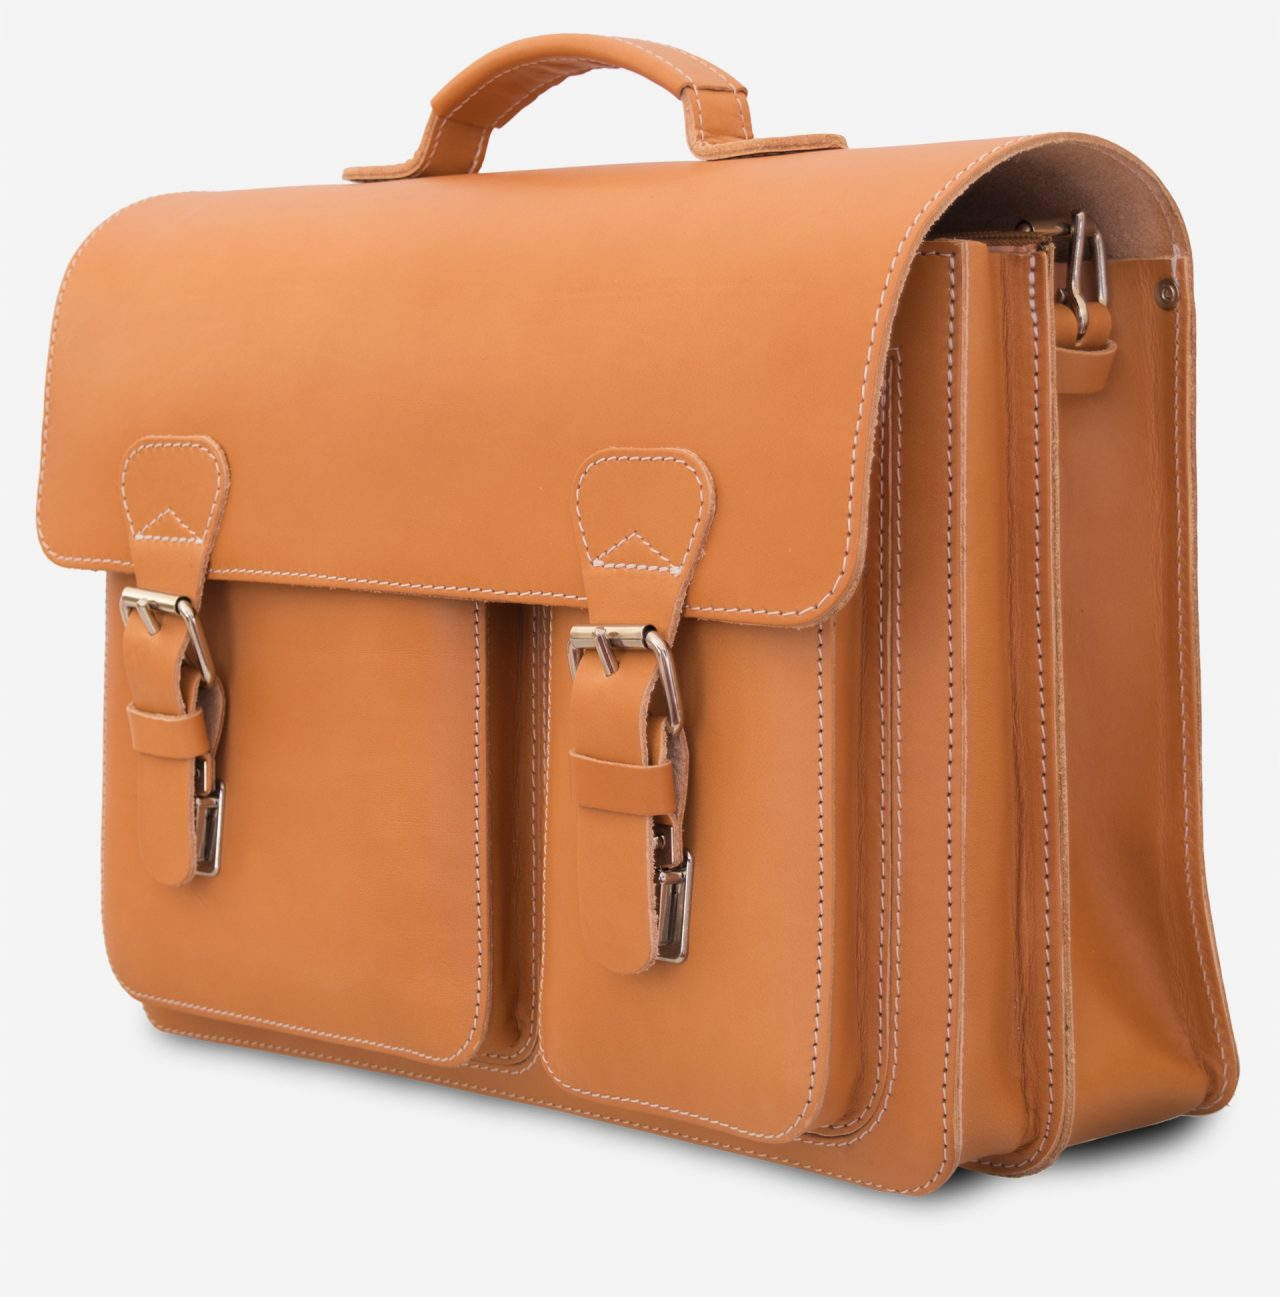 Side view of tan leather satchel with 2 compartments and 2 front asymmetric pockets.